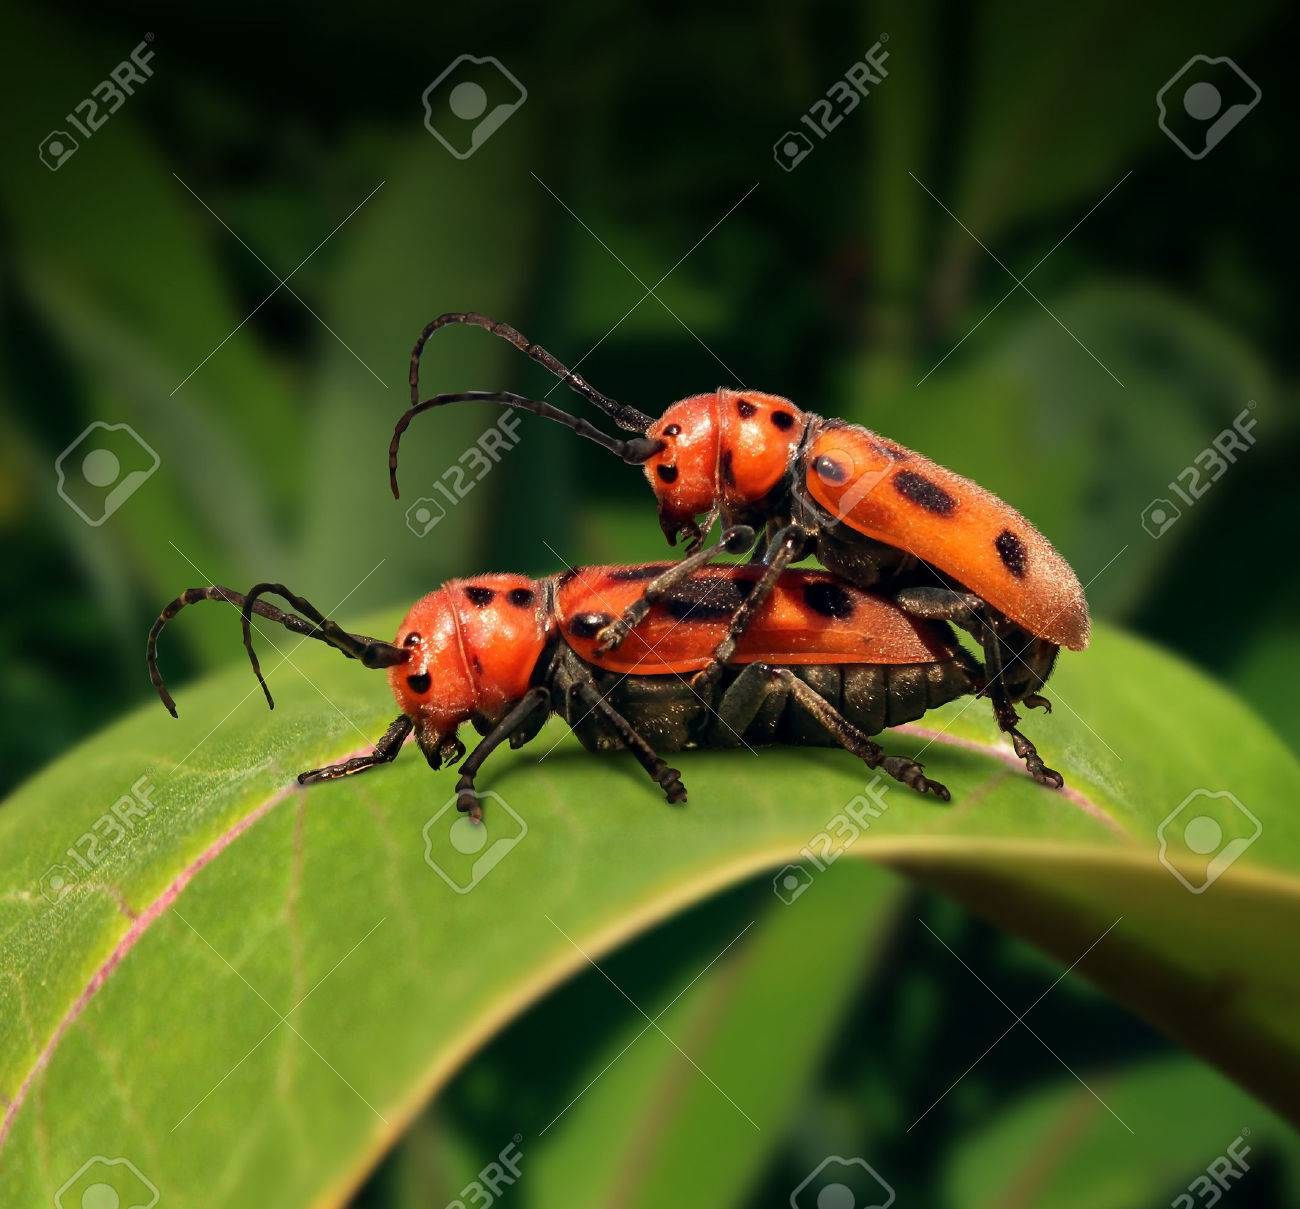 Sex in nature concept as two beetle insects in sexual activity for  reproduction on a green leaf as a biology symbol for natural selection and  the transfer ...